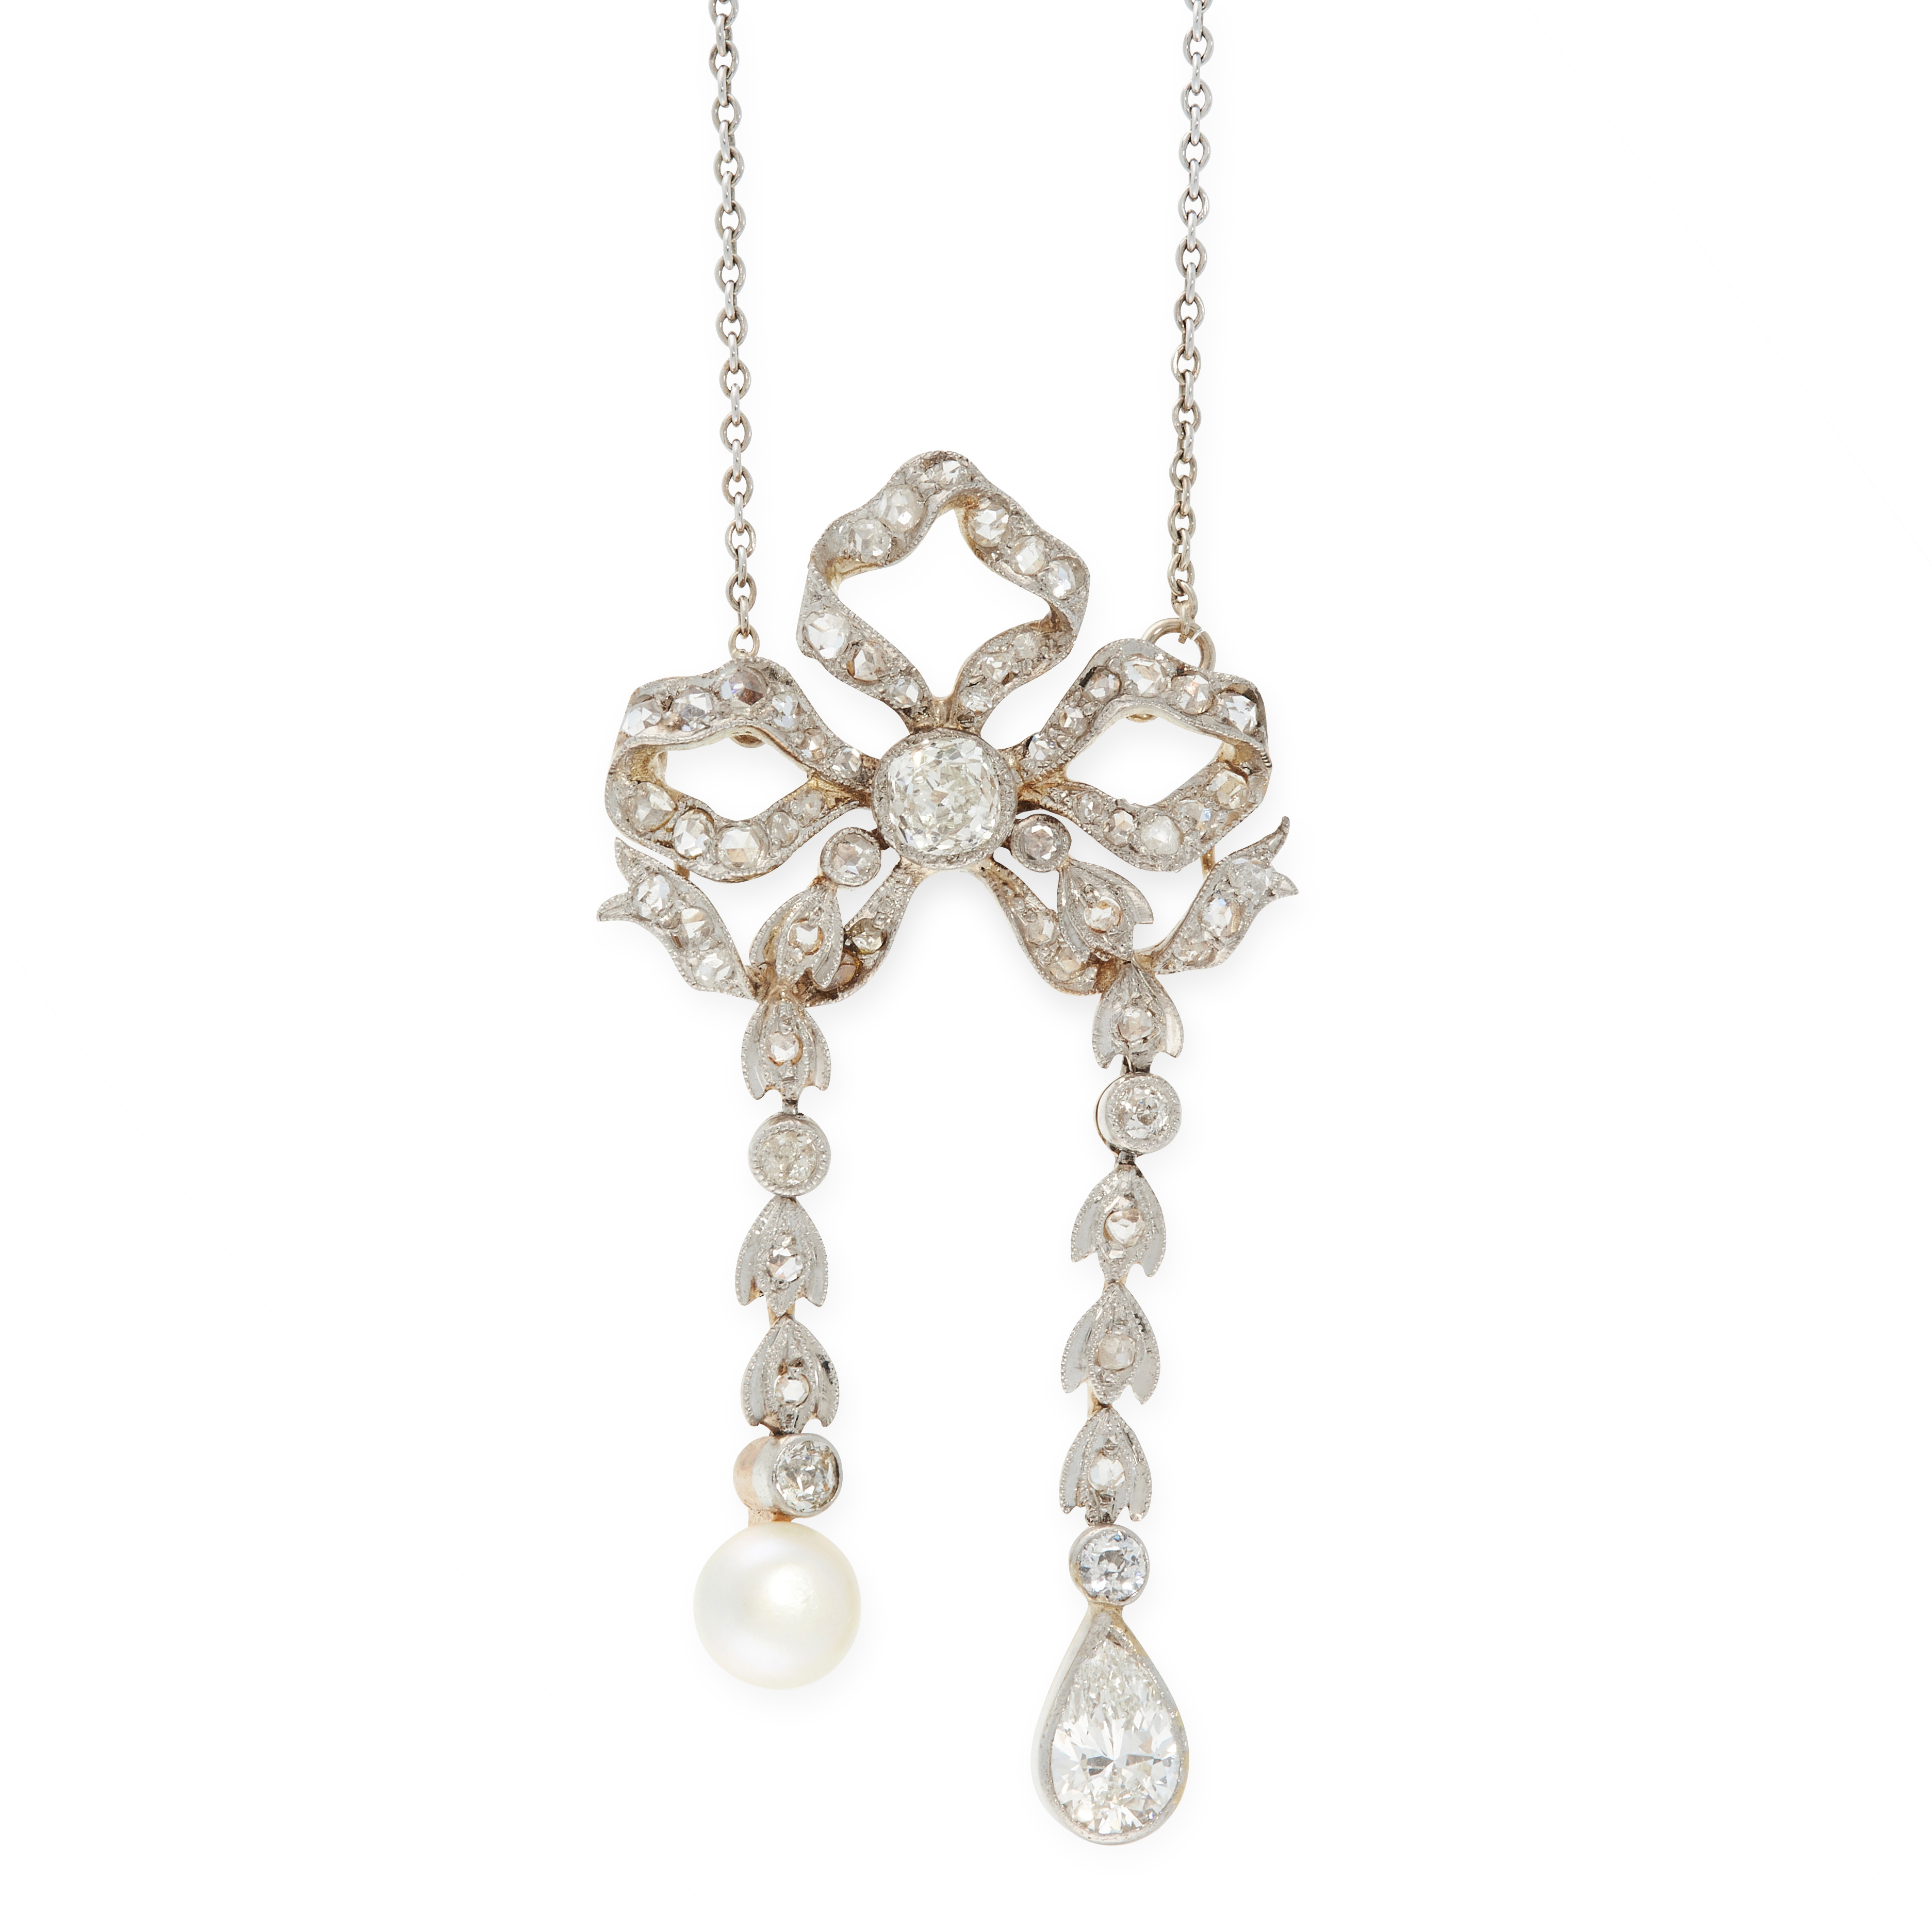 A PEARL AND DIAMOND LAVALIER NECKLACE, EARLY 20TH CENTURY in 18ct yellow and white gold, designed as